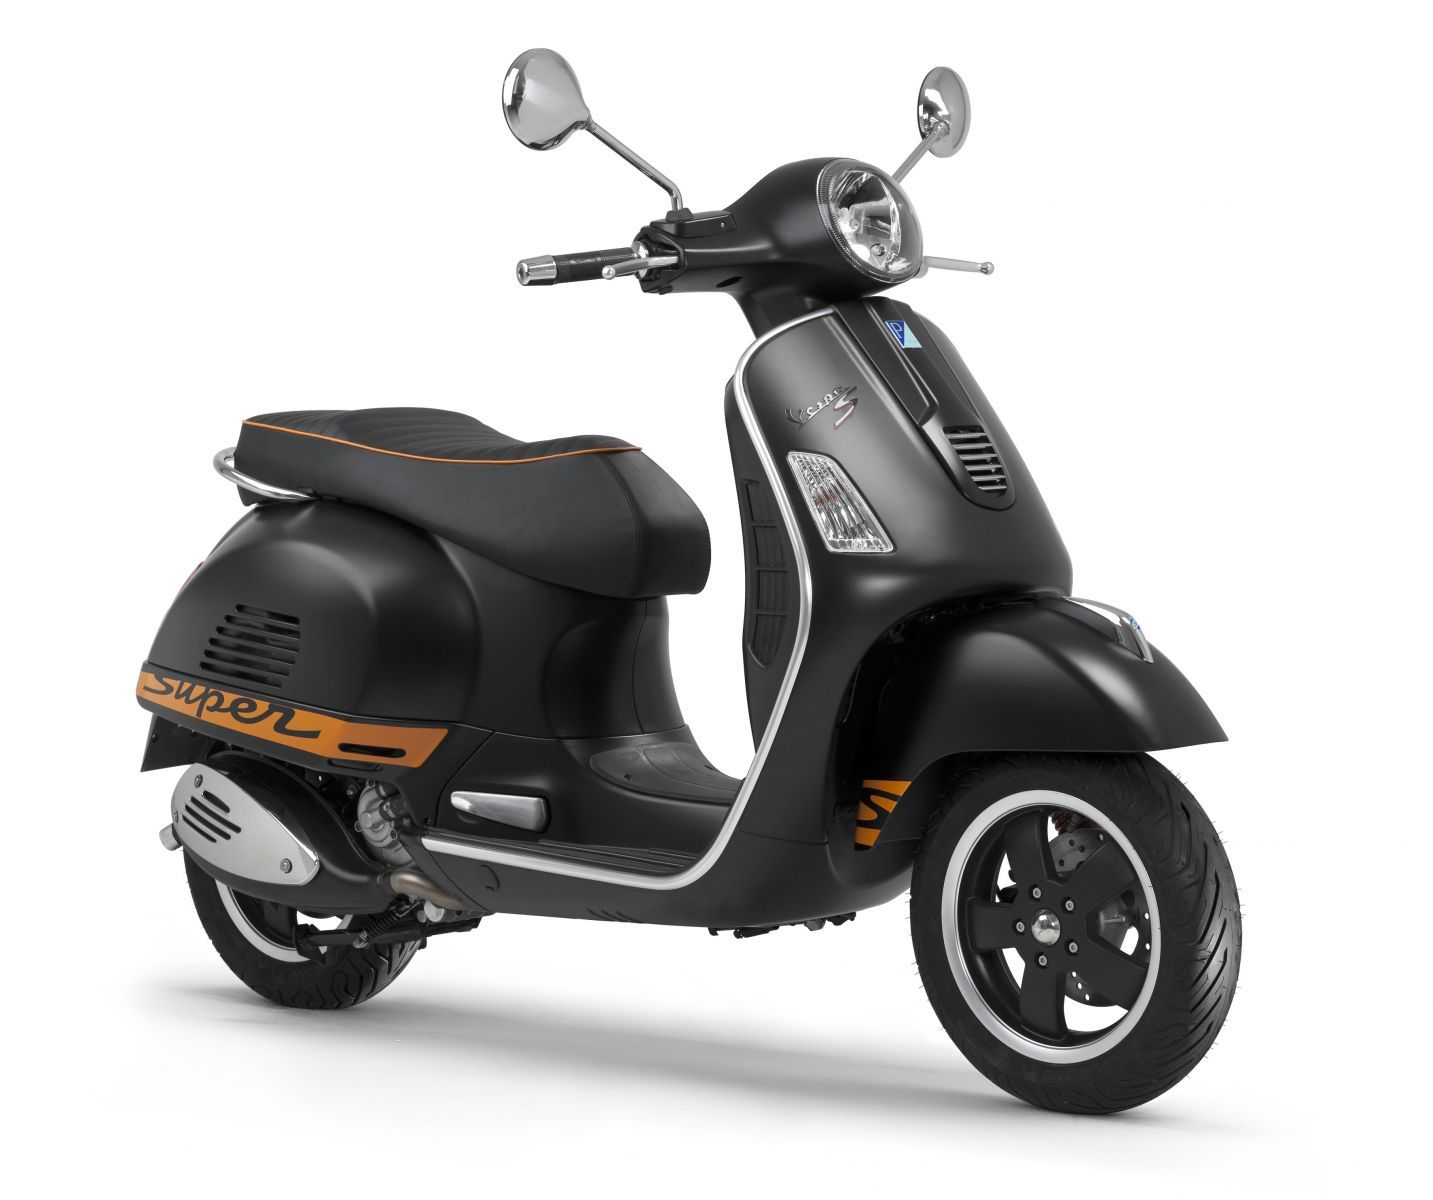 vente de scooters neufs bandol san scoot moto scooter motos d 39 occasion. Black Bedroom Furniture Sets. Home Design Ideas